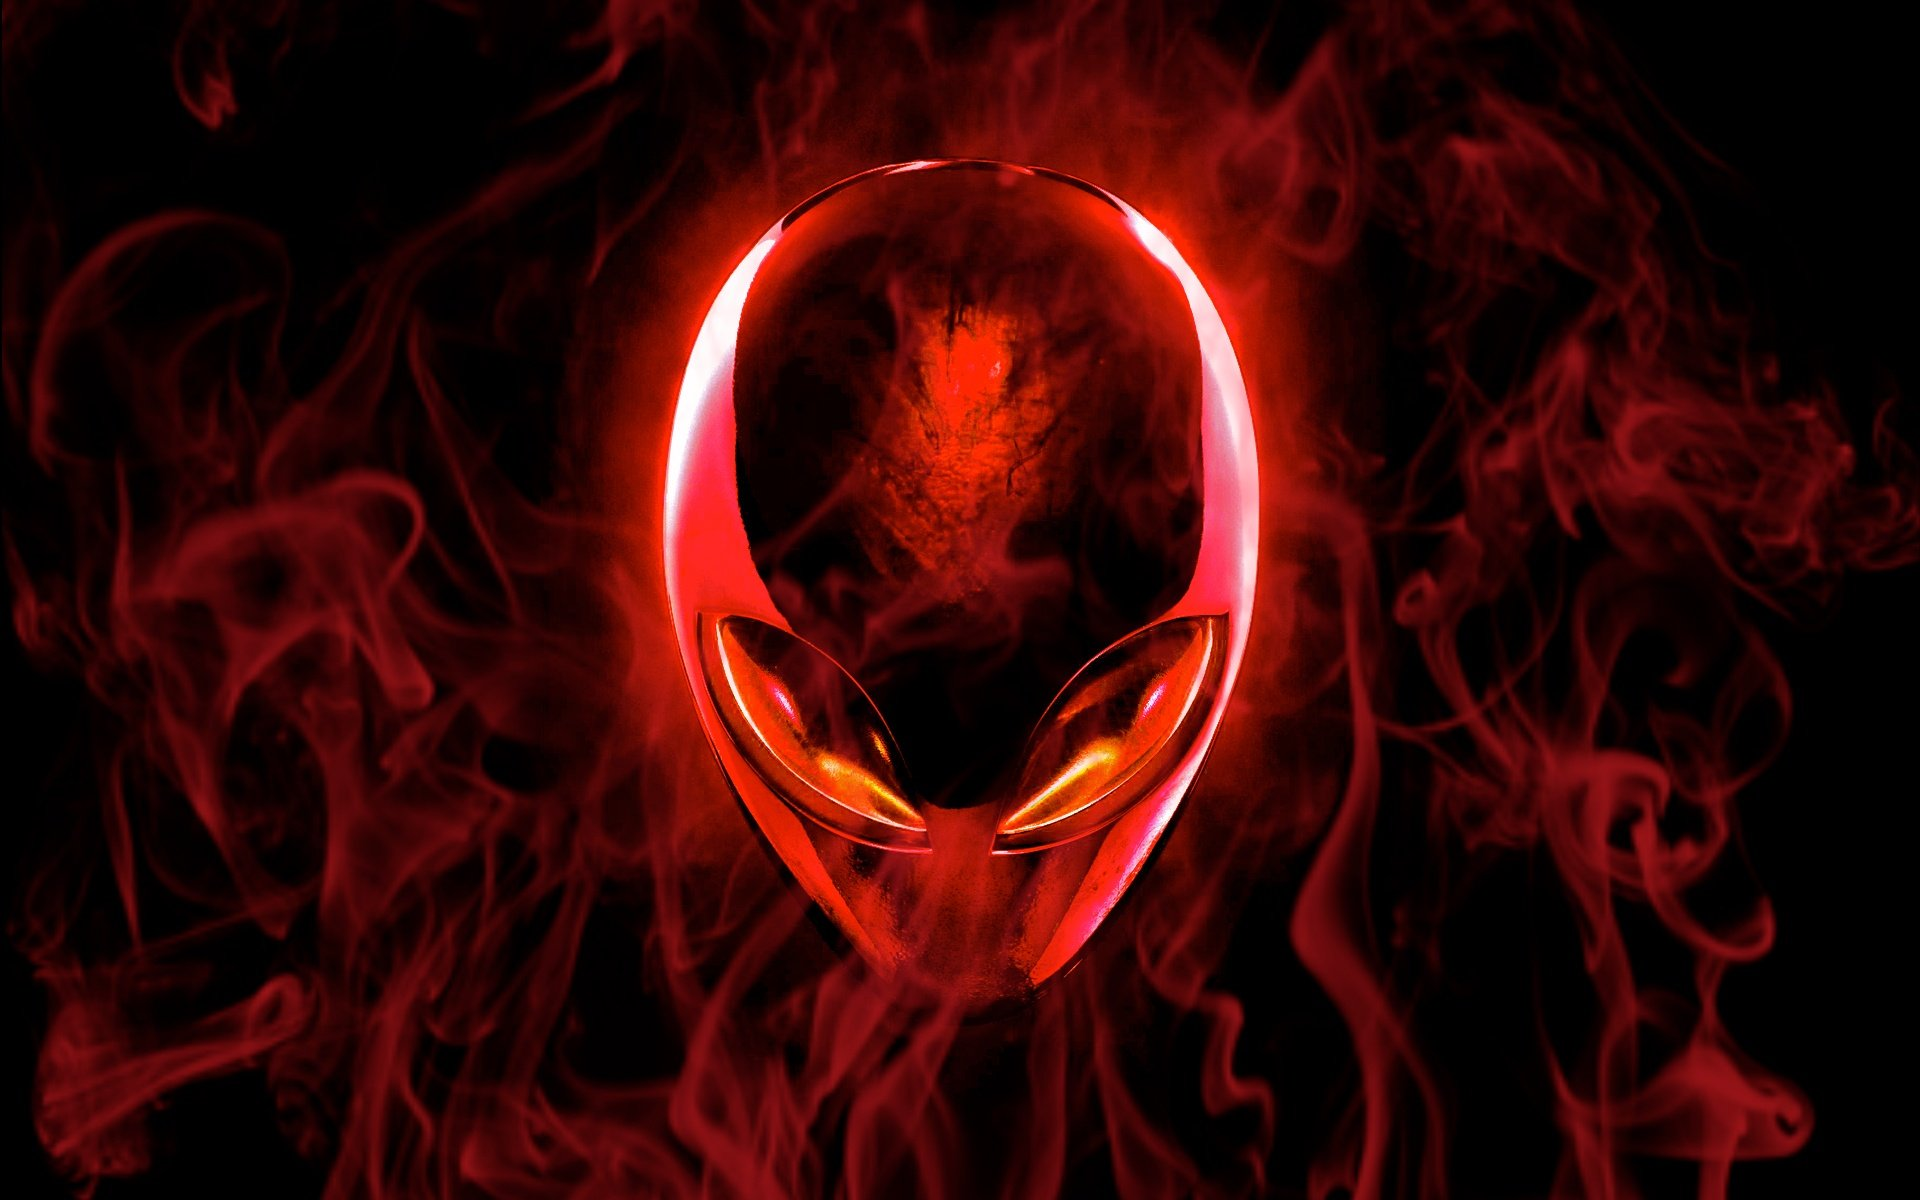 HD Alienware Wallpapers 19201080 Alienware Backgrounds for Laptops 1920x1200